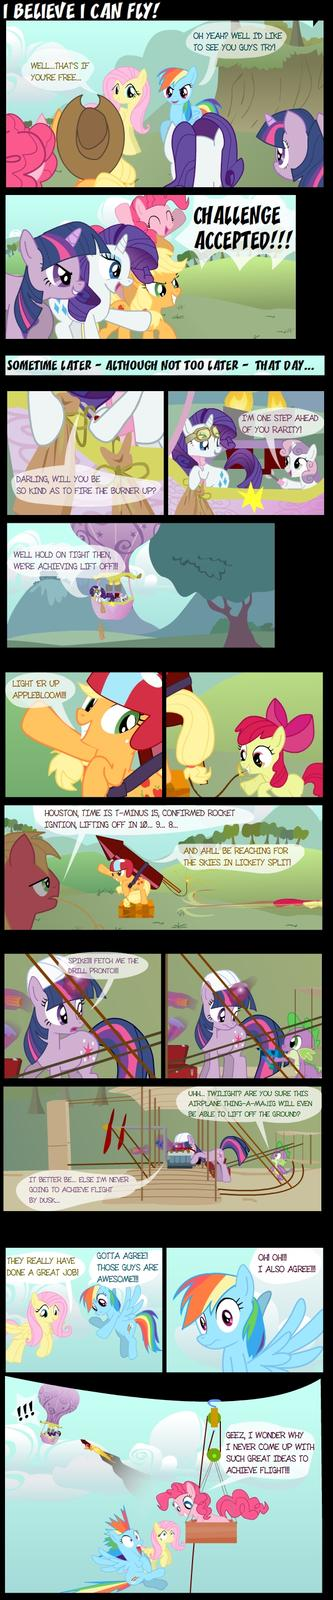 mlp__i_believe_i_can_fly_by_yudhaikeledai-d4fwrf9.jpg